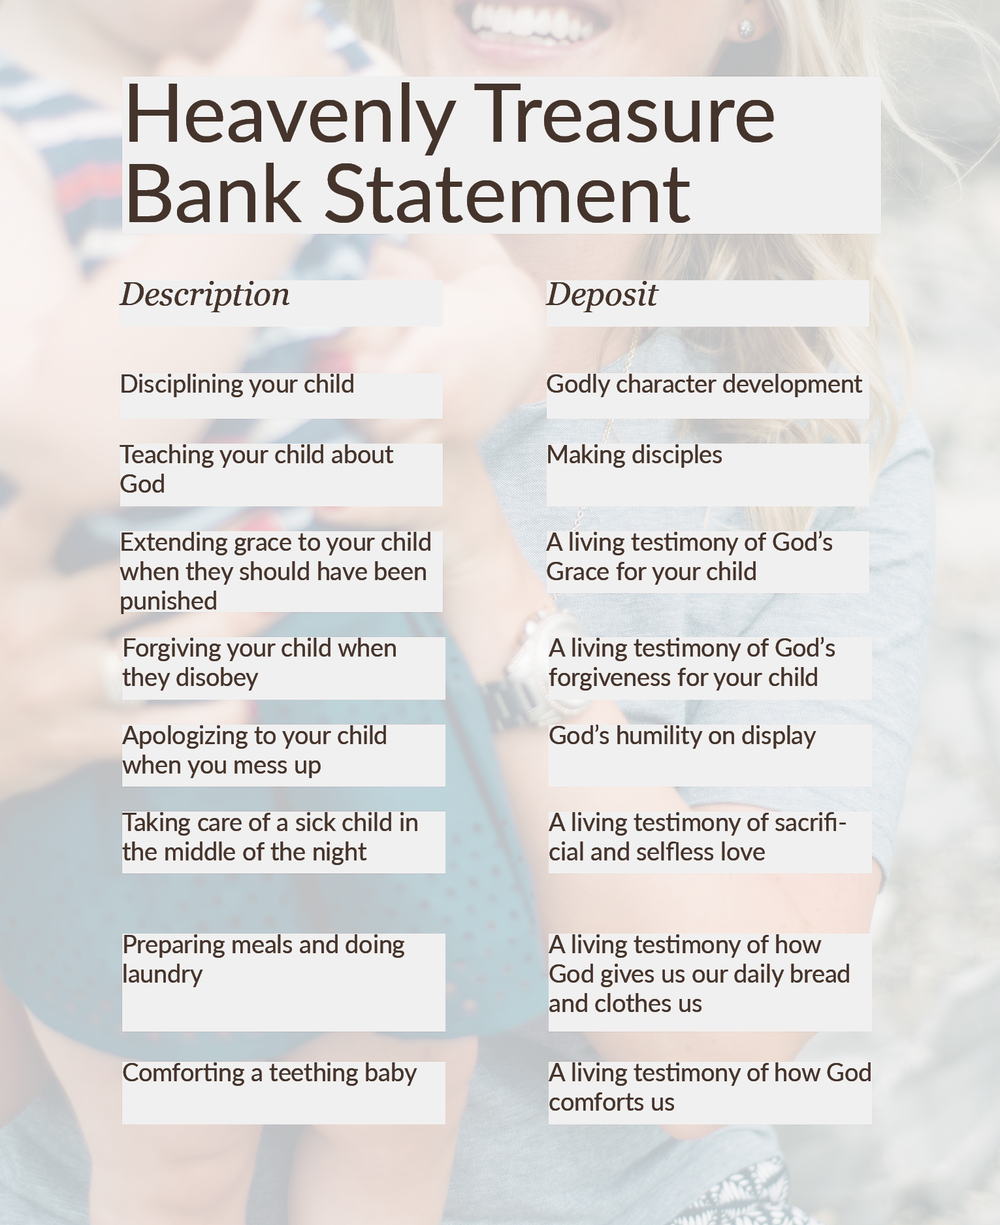 Heavenly Treasure Bank Statement | Everleigh Company | Biblical Encouragement and Practical Resources for Christian Women | Christian Blog